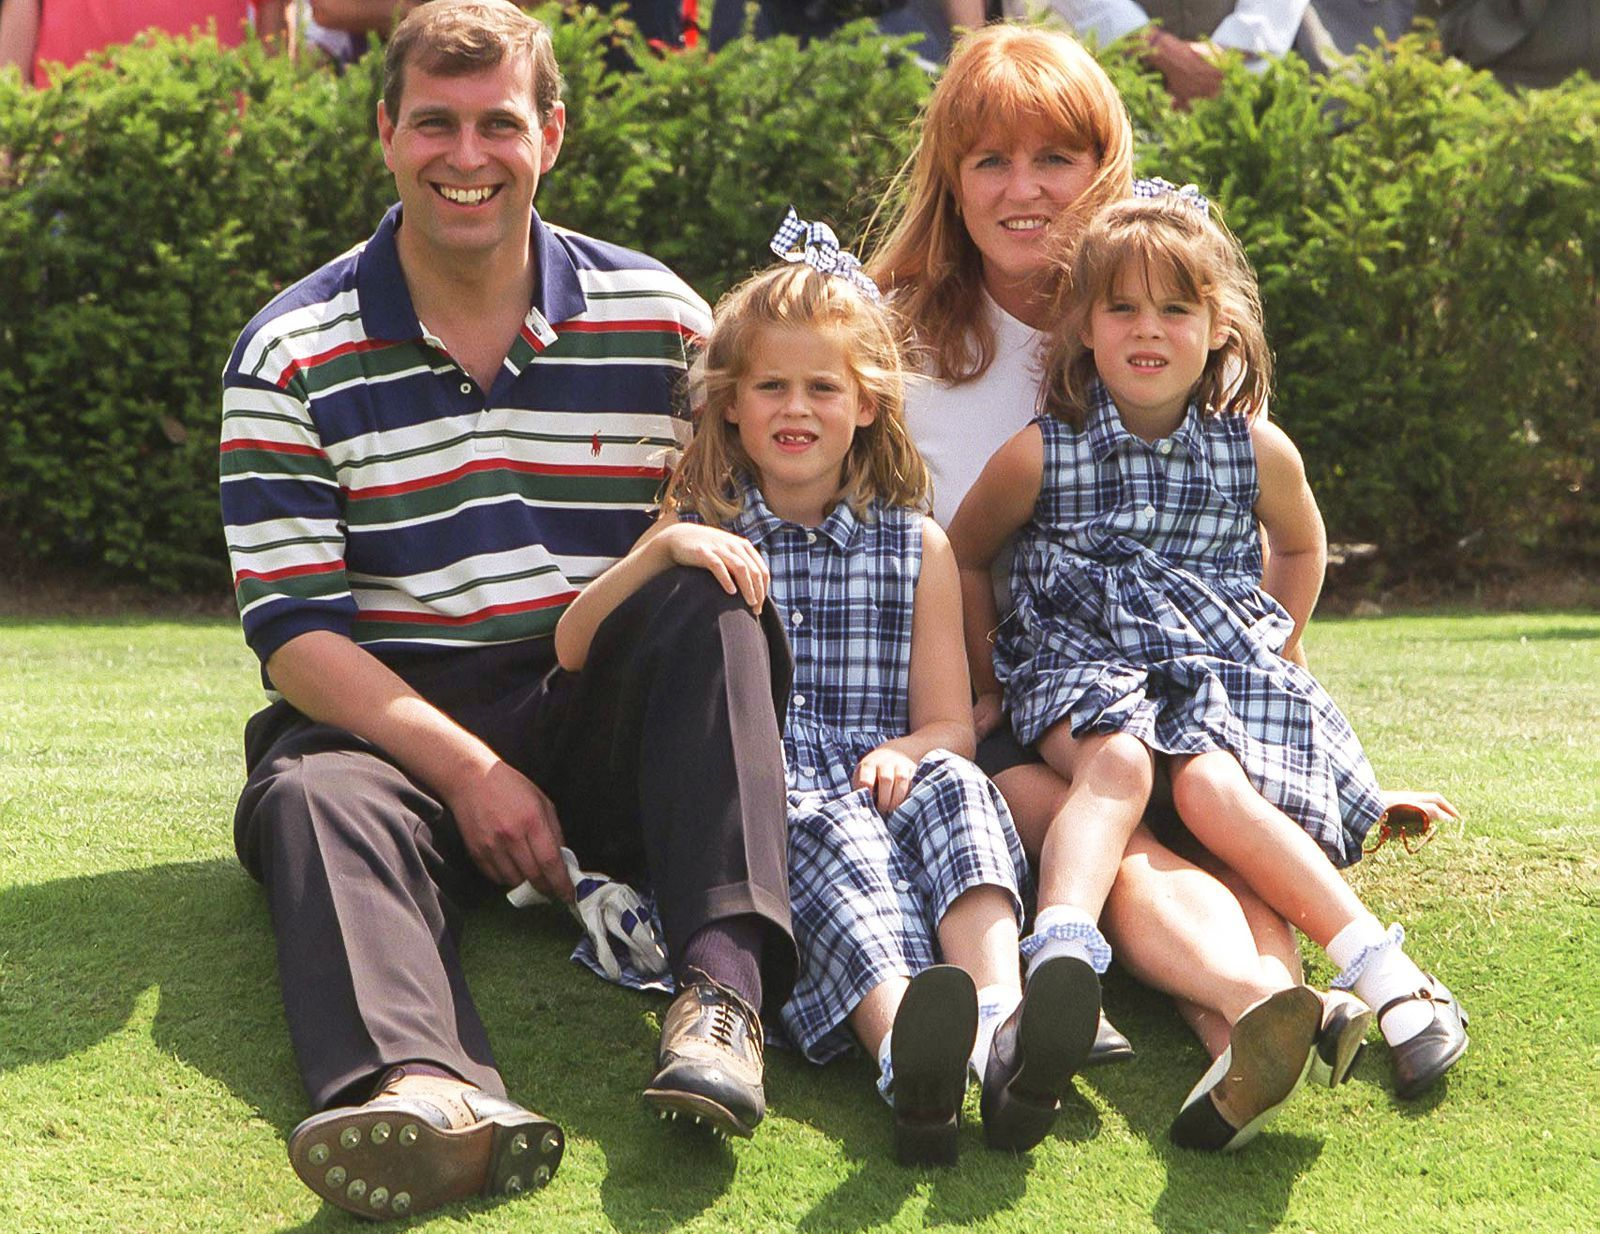 Sarah Ferguson Says Her Relationship With Prince Andrew Is